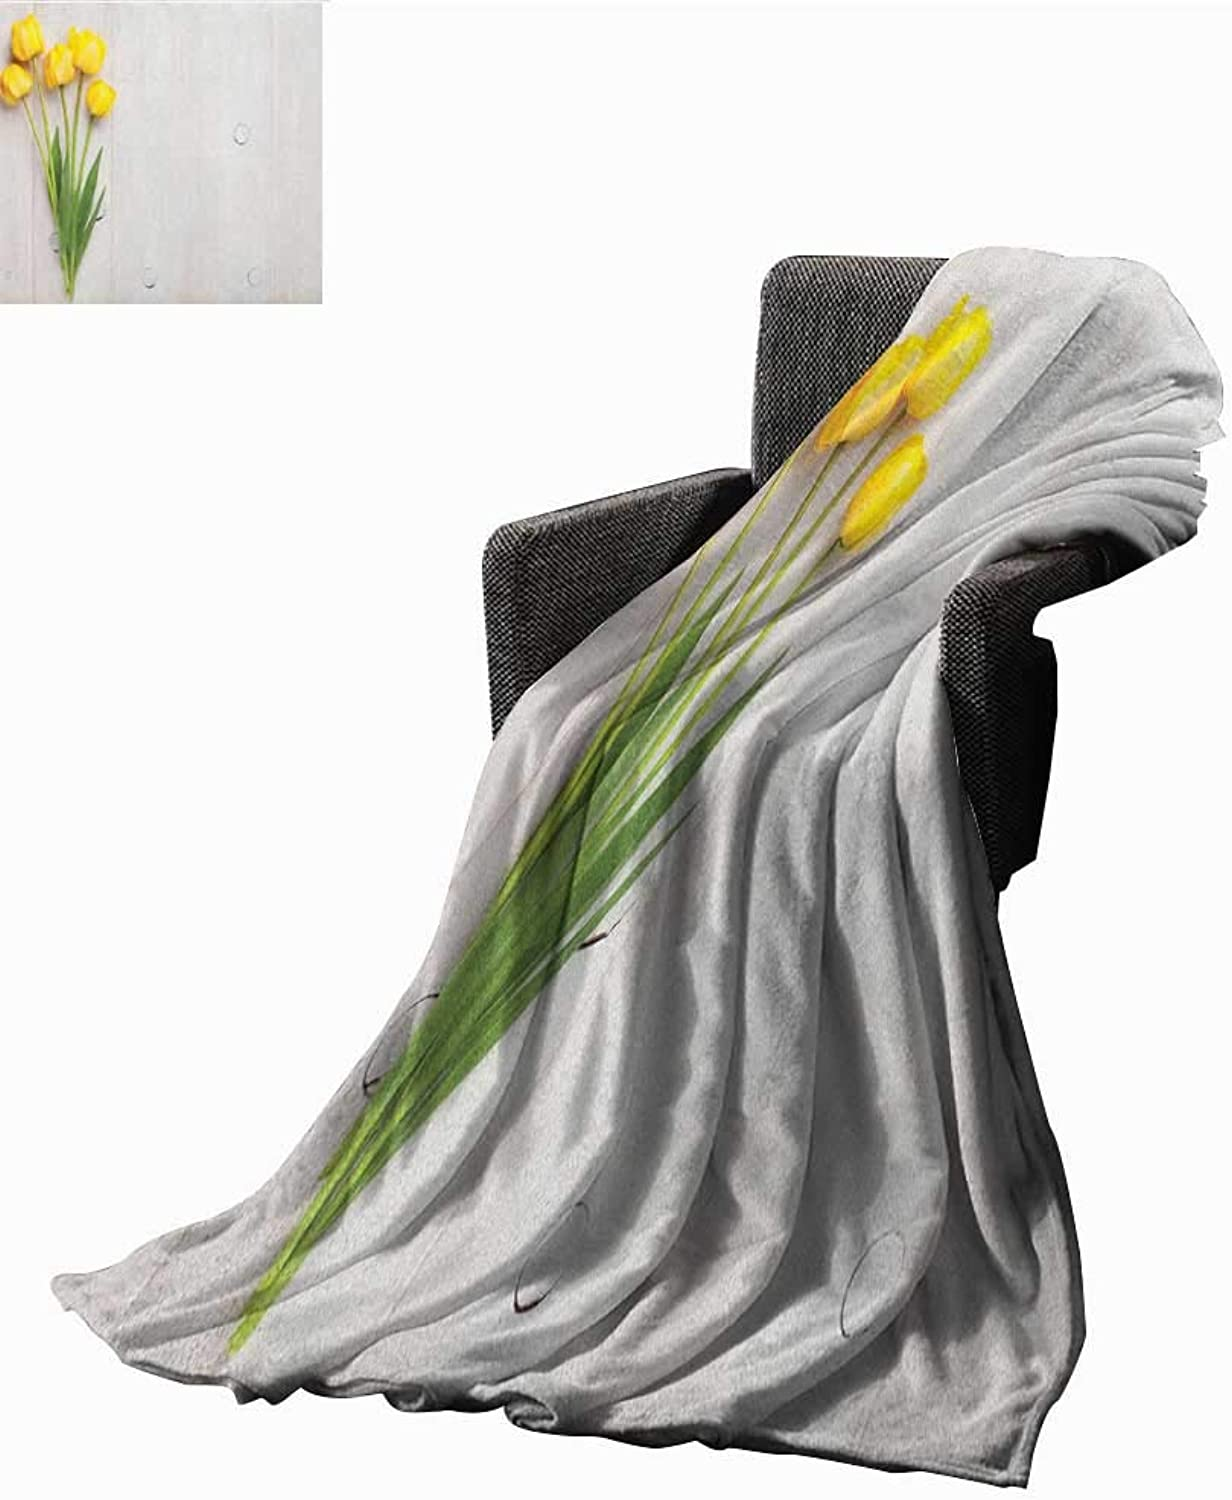 WilliamsDecor Bed or Couch 60  x 35 Yellow Lightweight Blanket colorful Tulips on a Rustic White Wooden Yellow Board with Spring Theme Print Summer Quilt Comforter Yellow White Lime Green